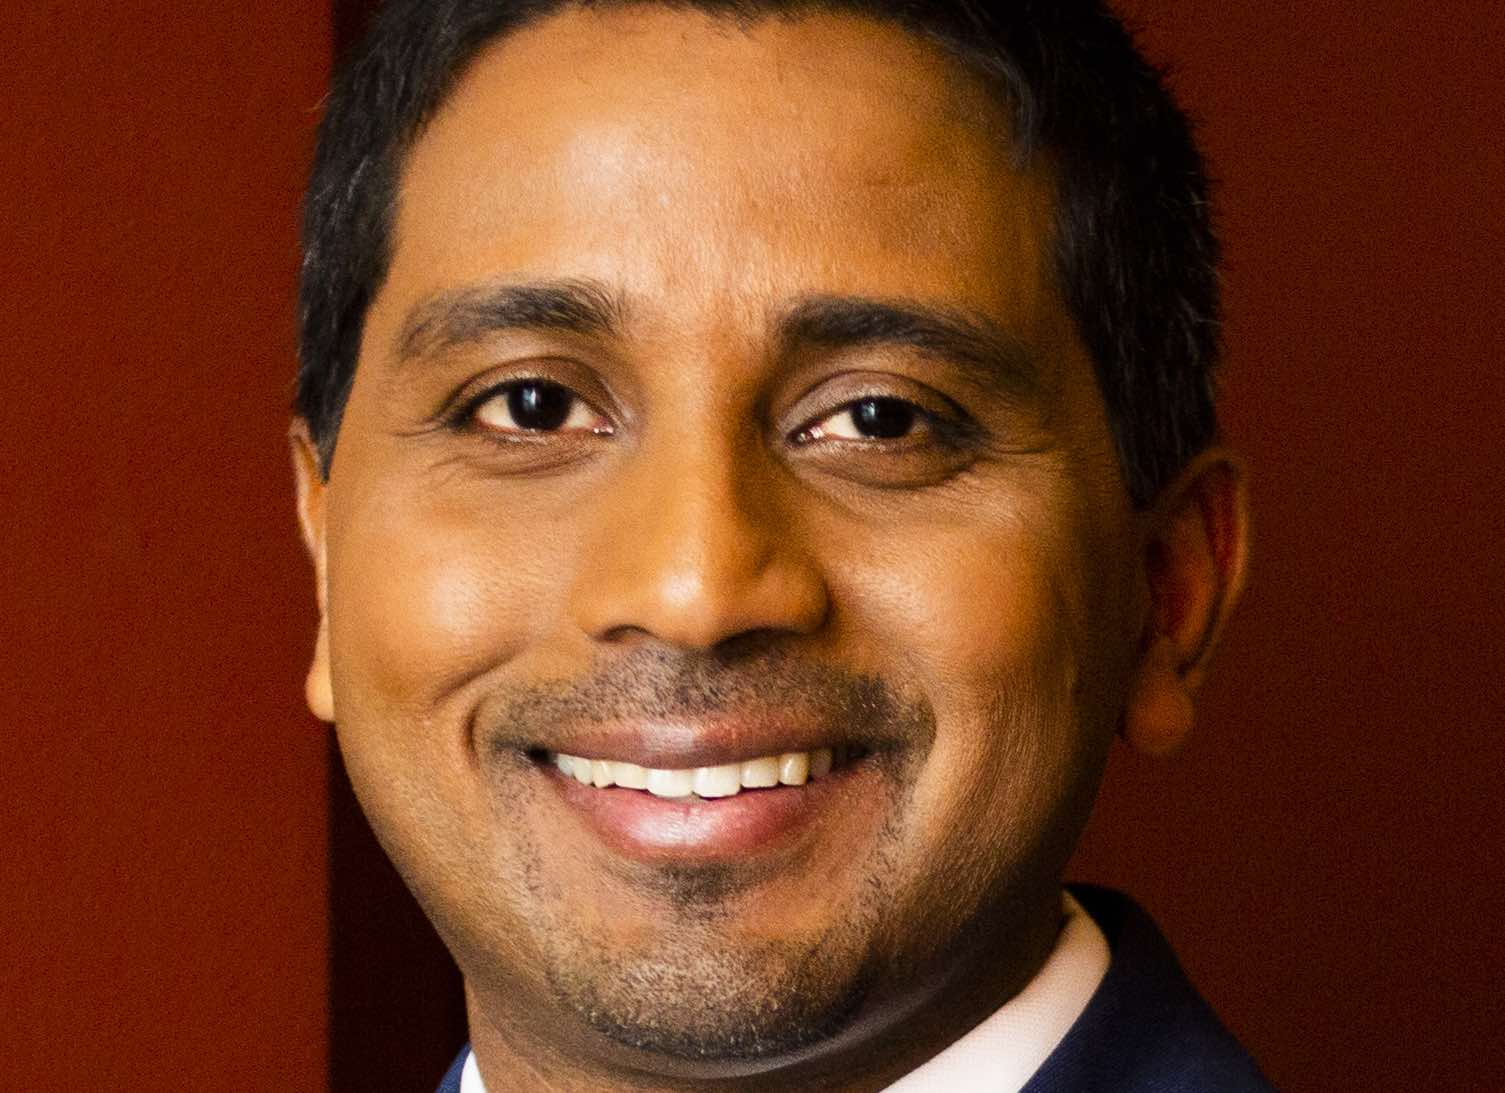 The 2019 Global Leaders in Consulting: Nigel Vaz